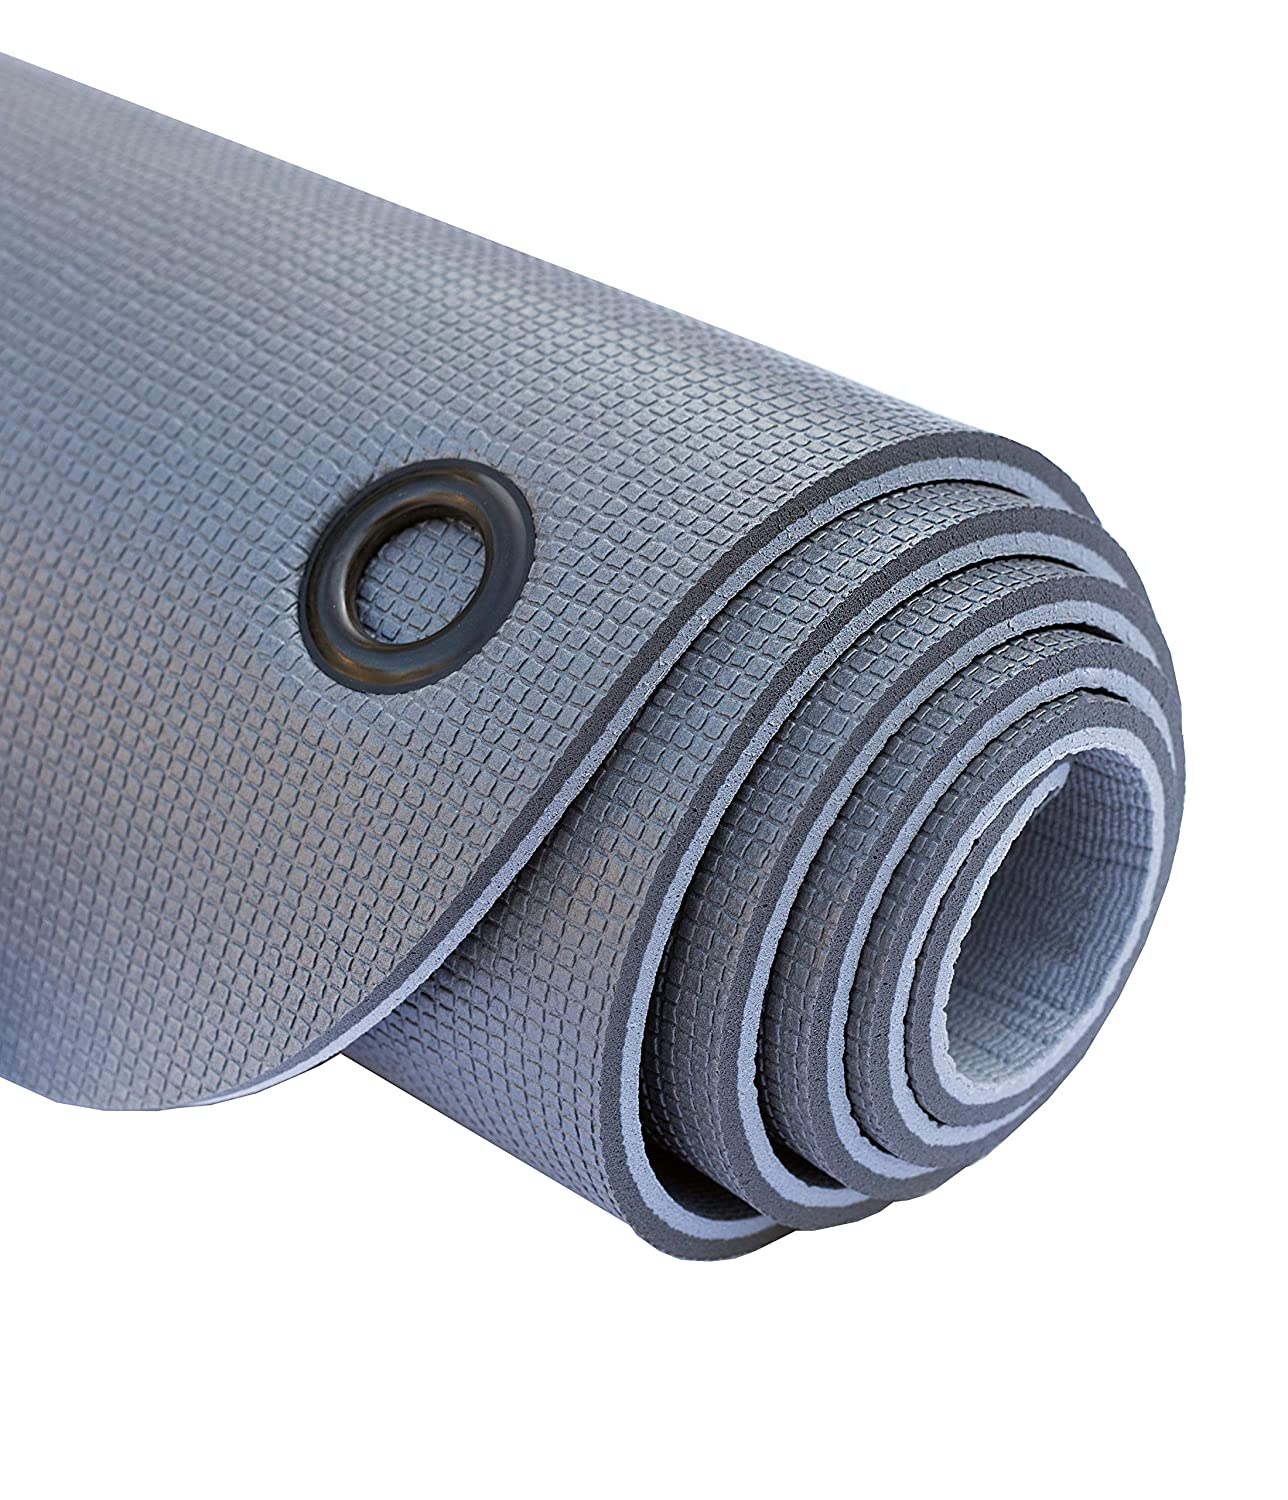 Manduka 8 mm MDK Fit Yoga Mat